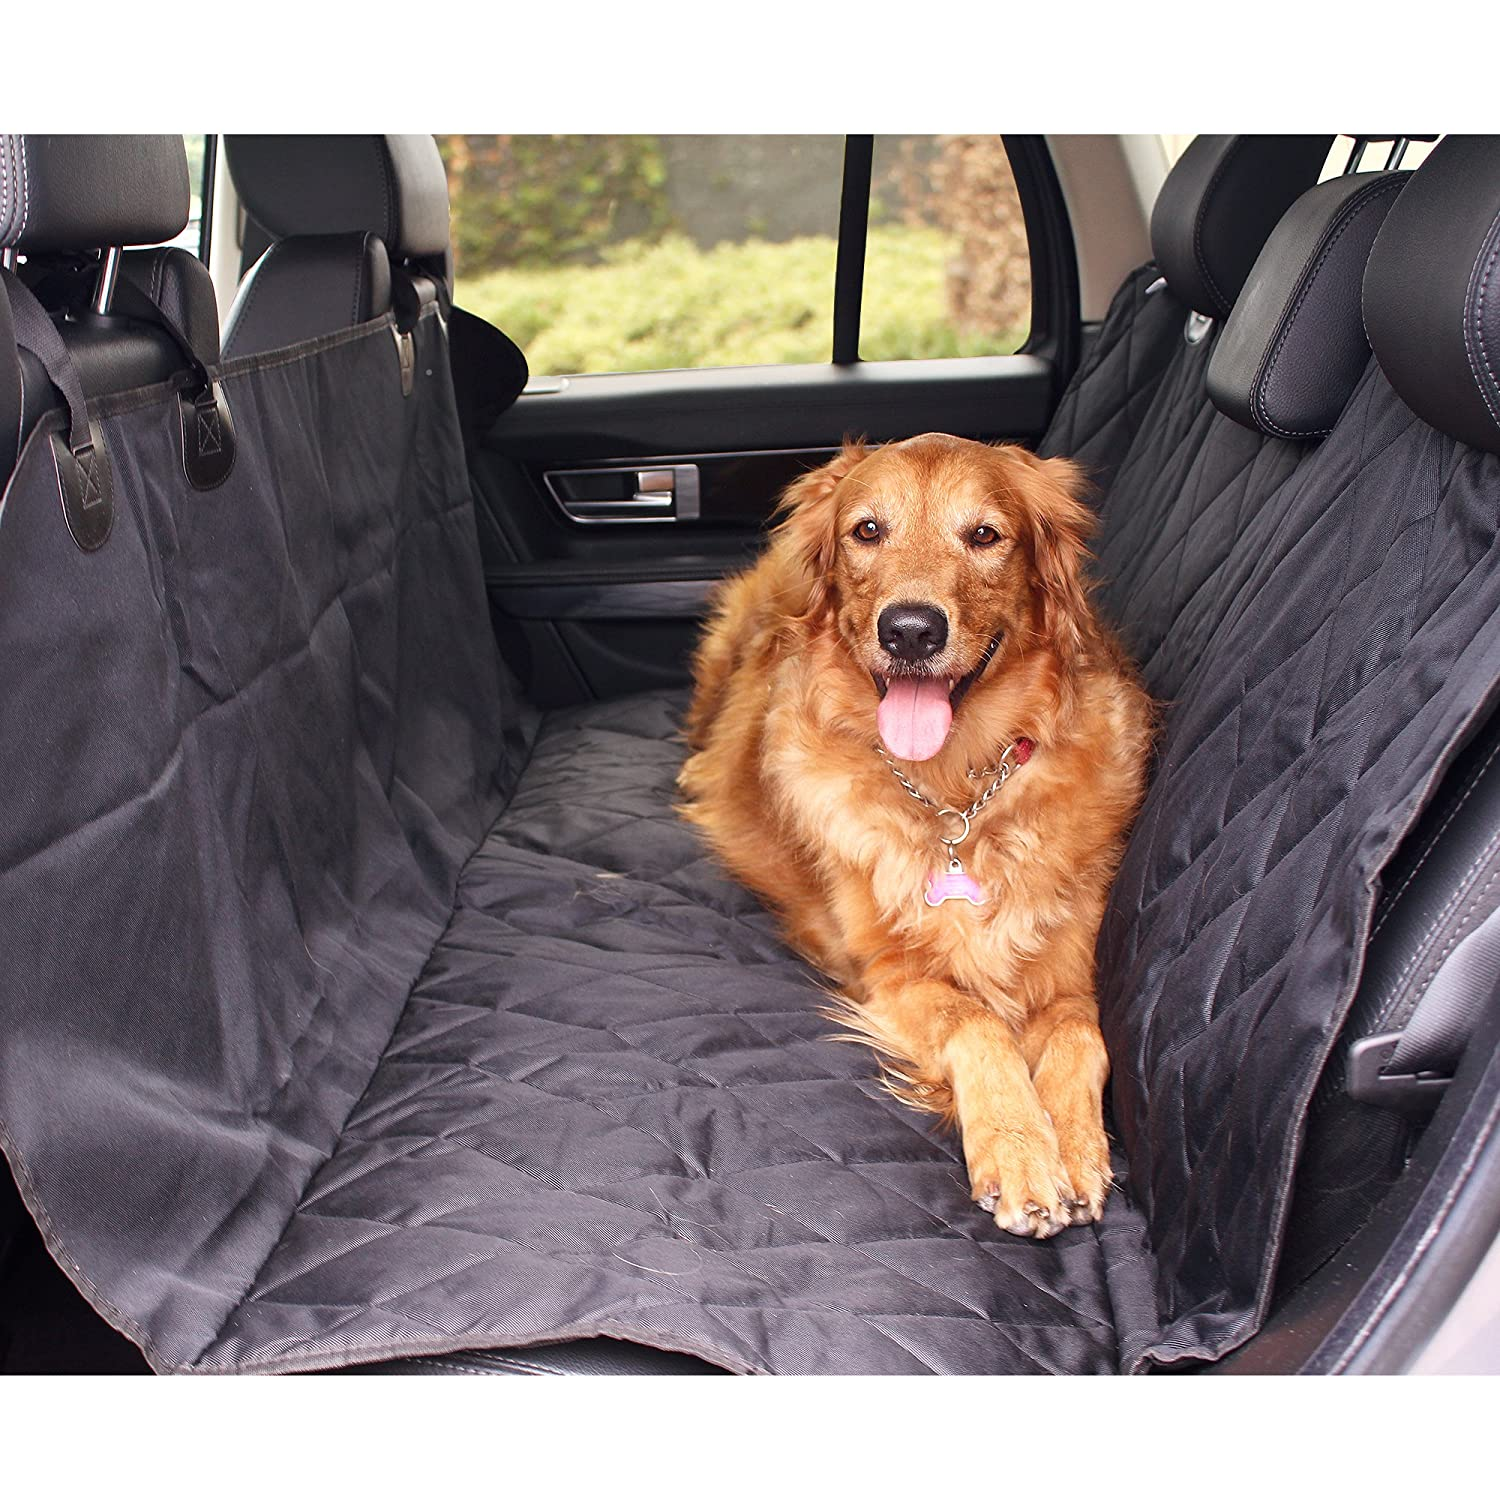 amazon     barksbar pet car seat cover with seat anchors for cars trucks and suv u0027s water proof and non slip backing regular black   pet supplies amazon     barksbar pet car seat cover with seat anchors for      rh   amazon